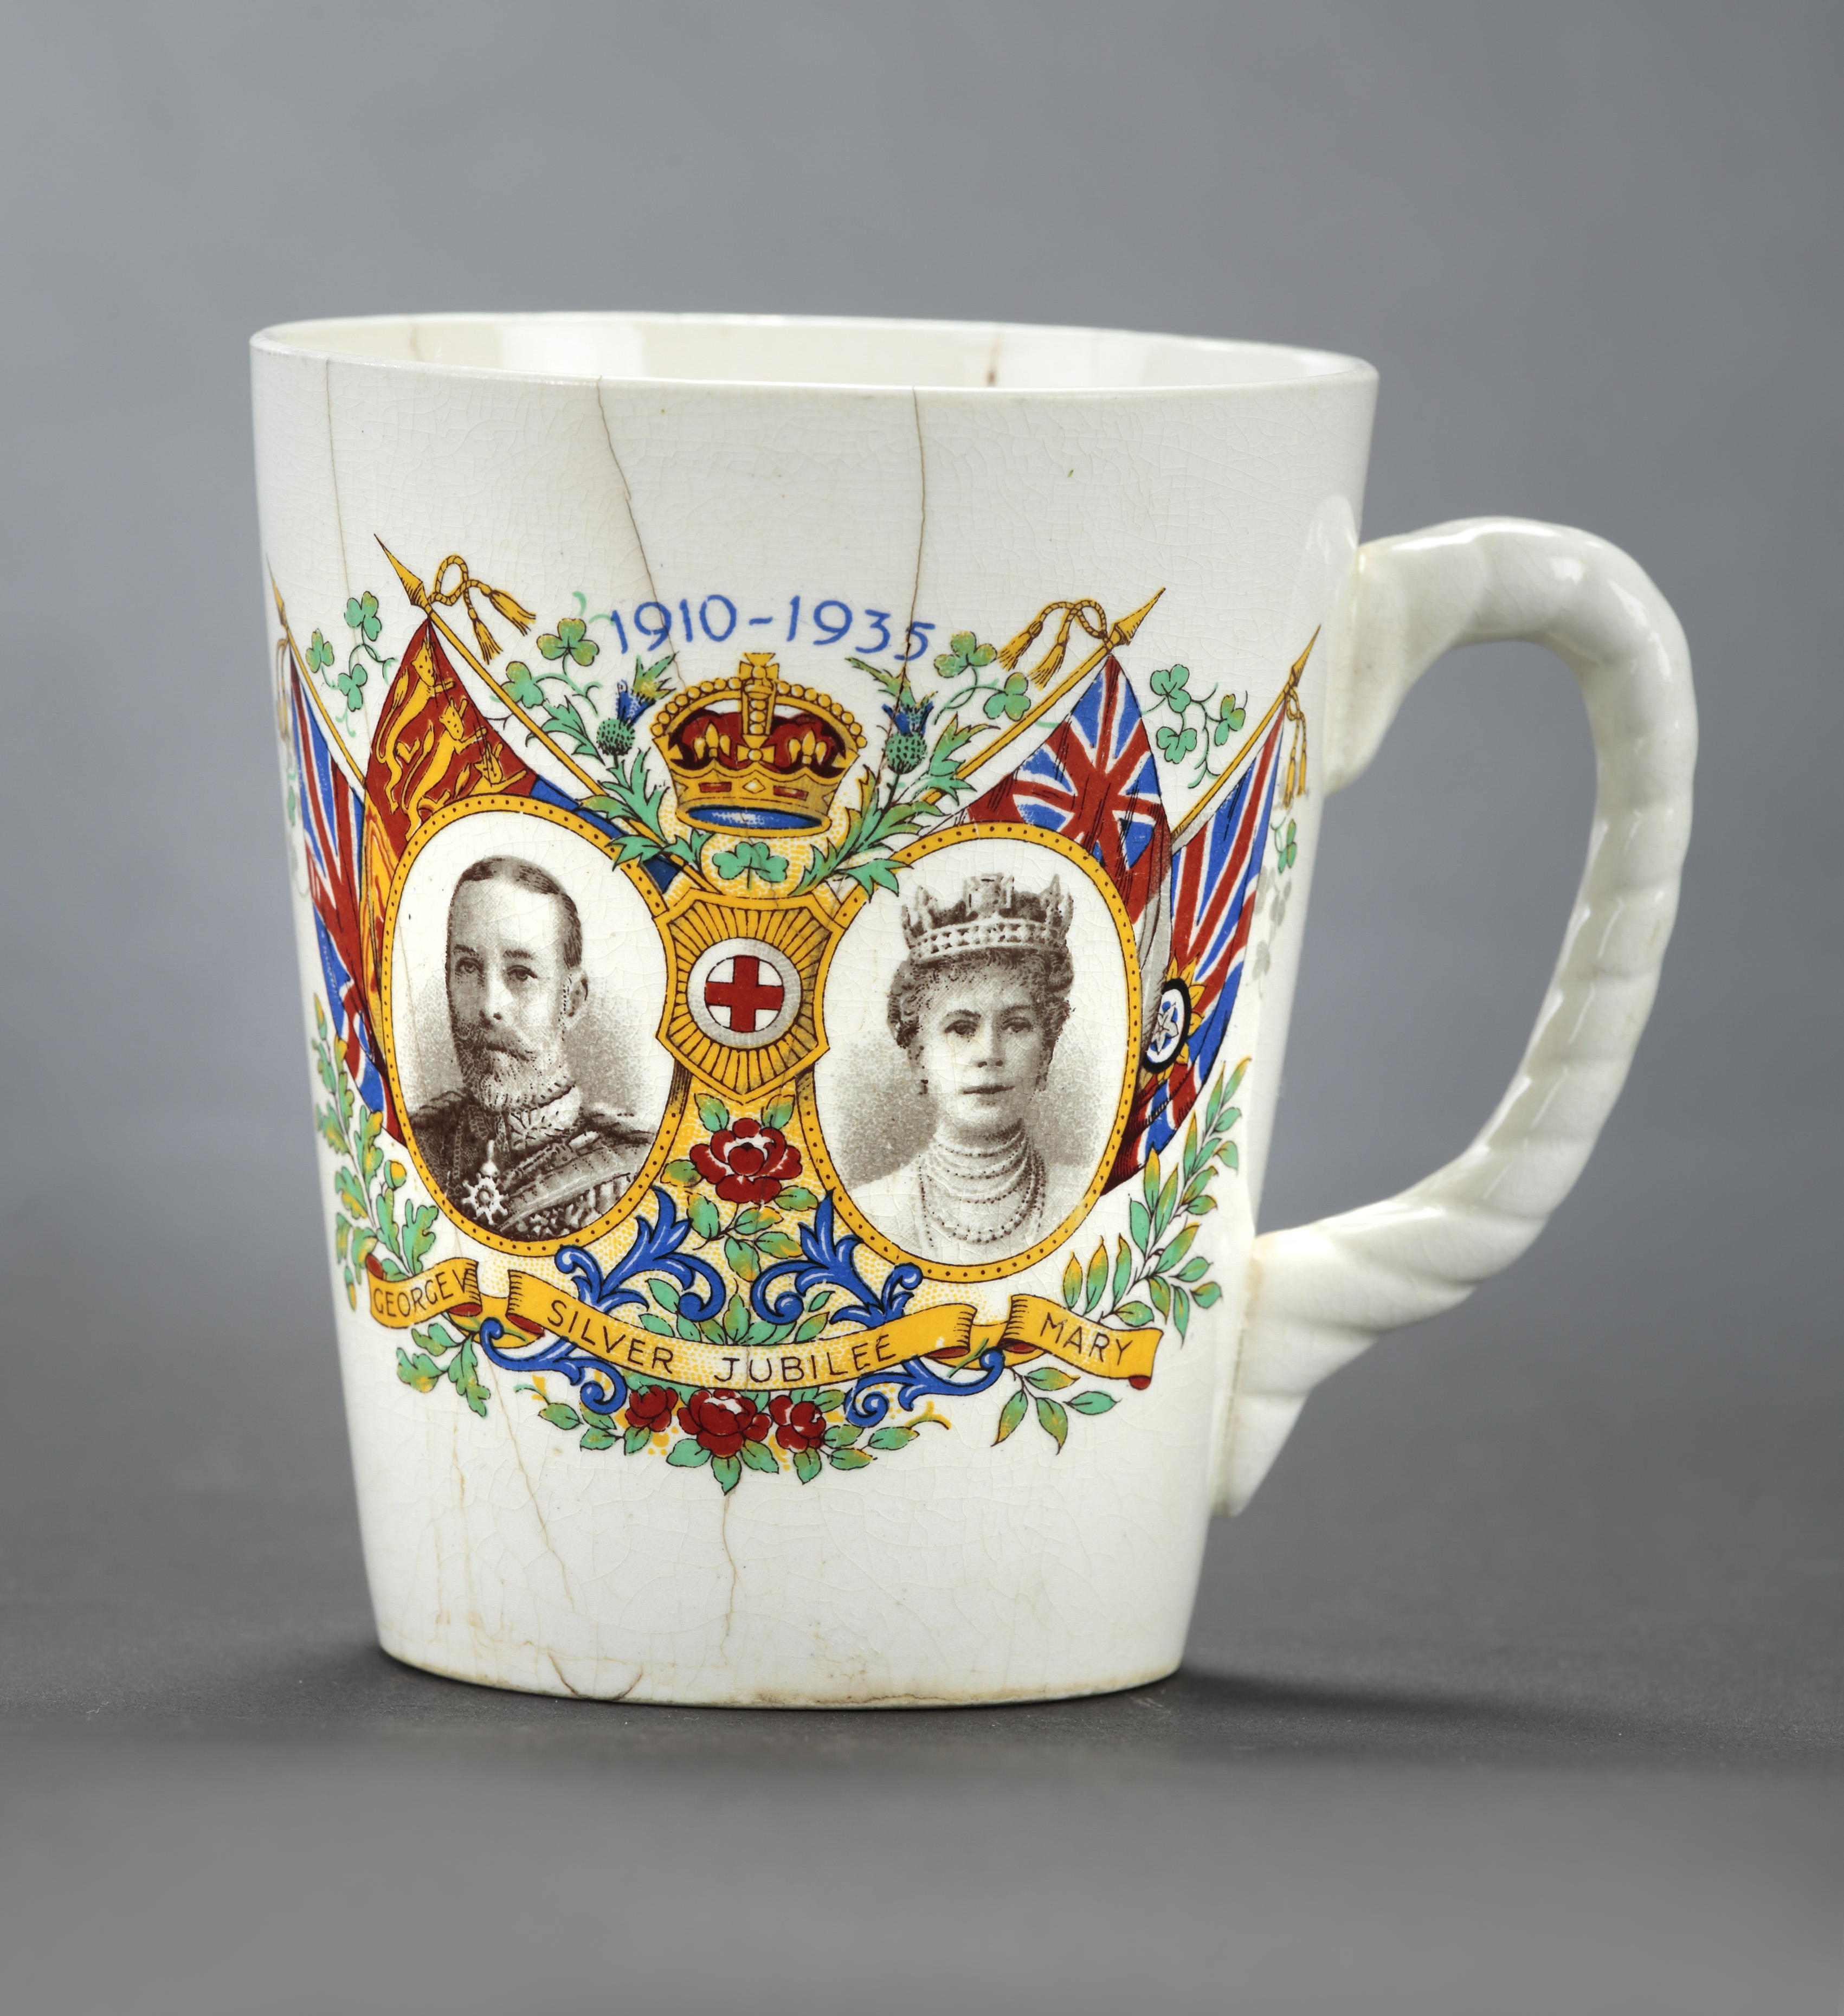 Semi-conical white ceramic mug with rope twist handle. Decorated on the front with oval sepia portraits of George V and Queen Mary in a polychrome surround of 4 flags, crown, national emblems and blue scrolls. Above in blue: